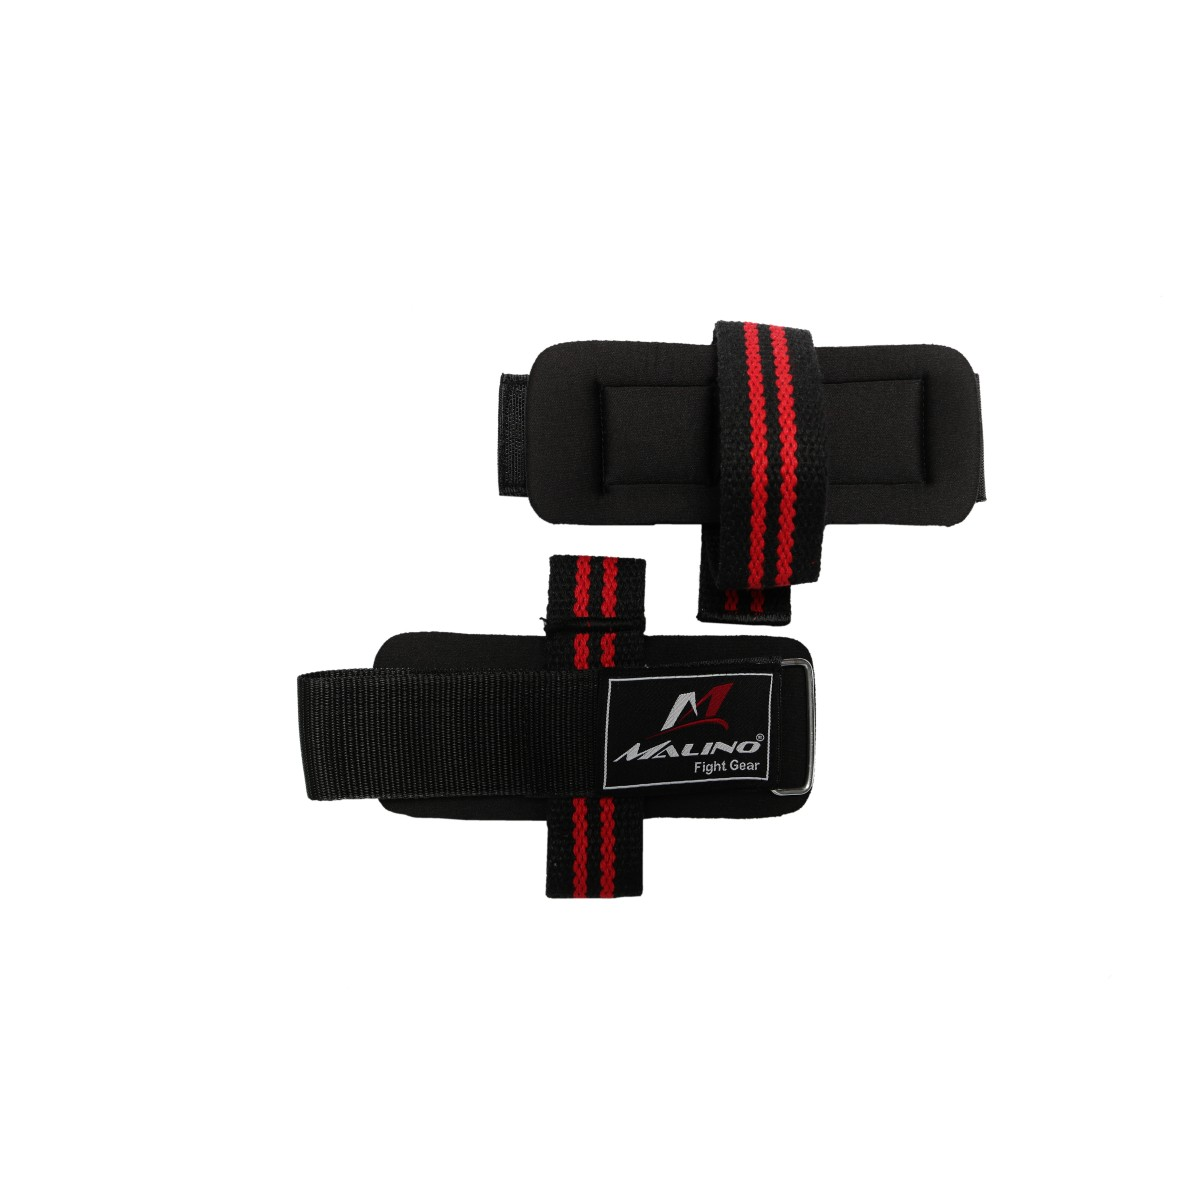 Malino Premium Wrist Wrap With Strap Black and Red